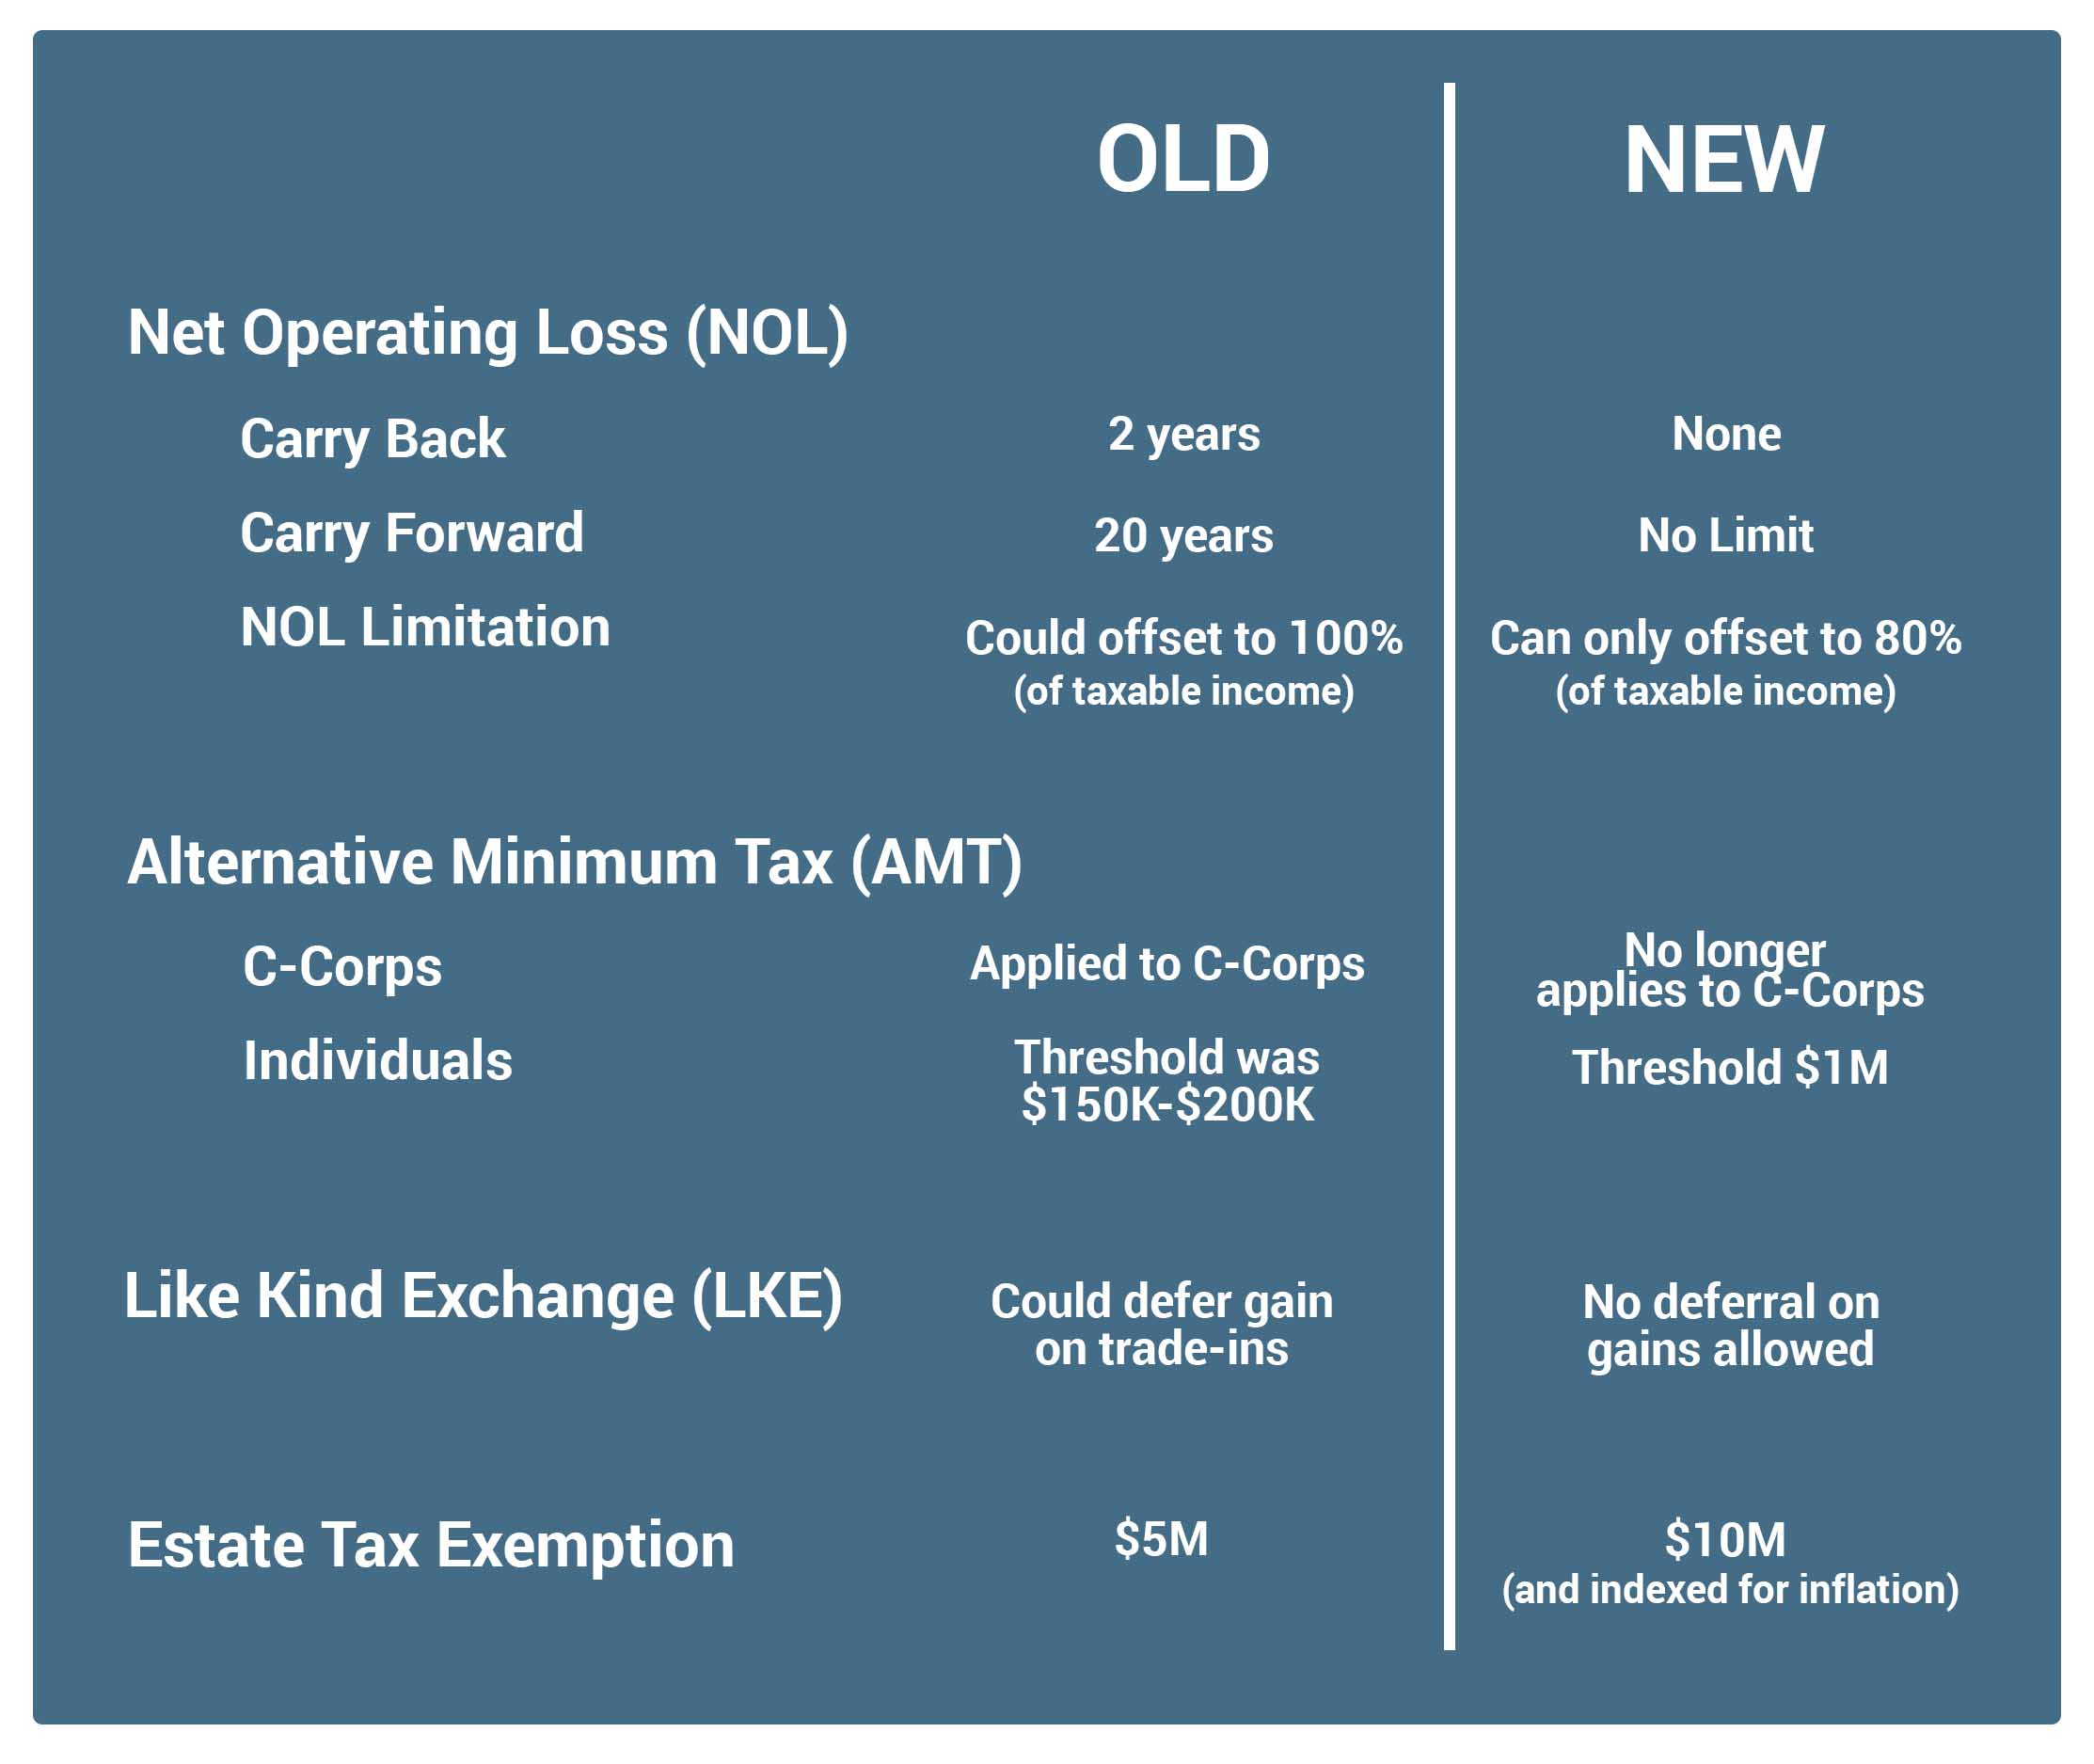 NOL AMT LKE Changes in New Tax Law